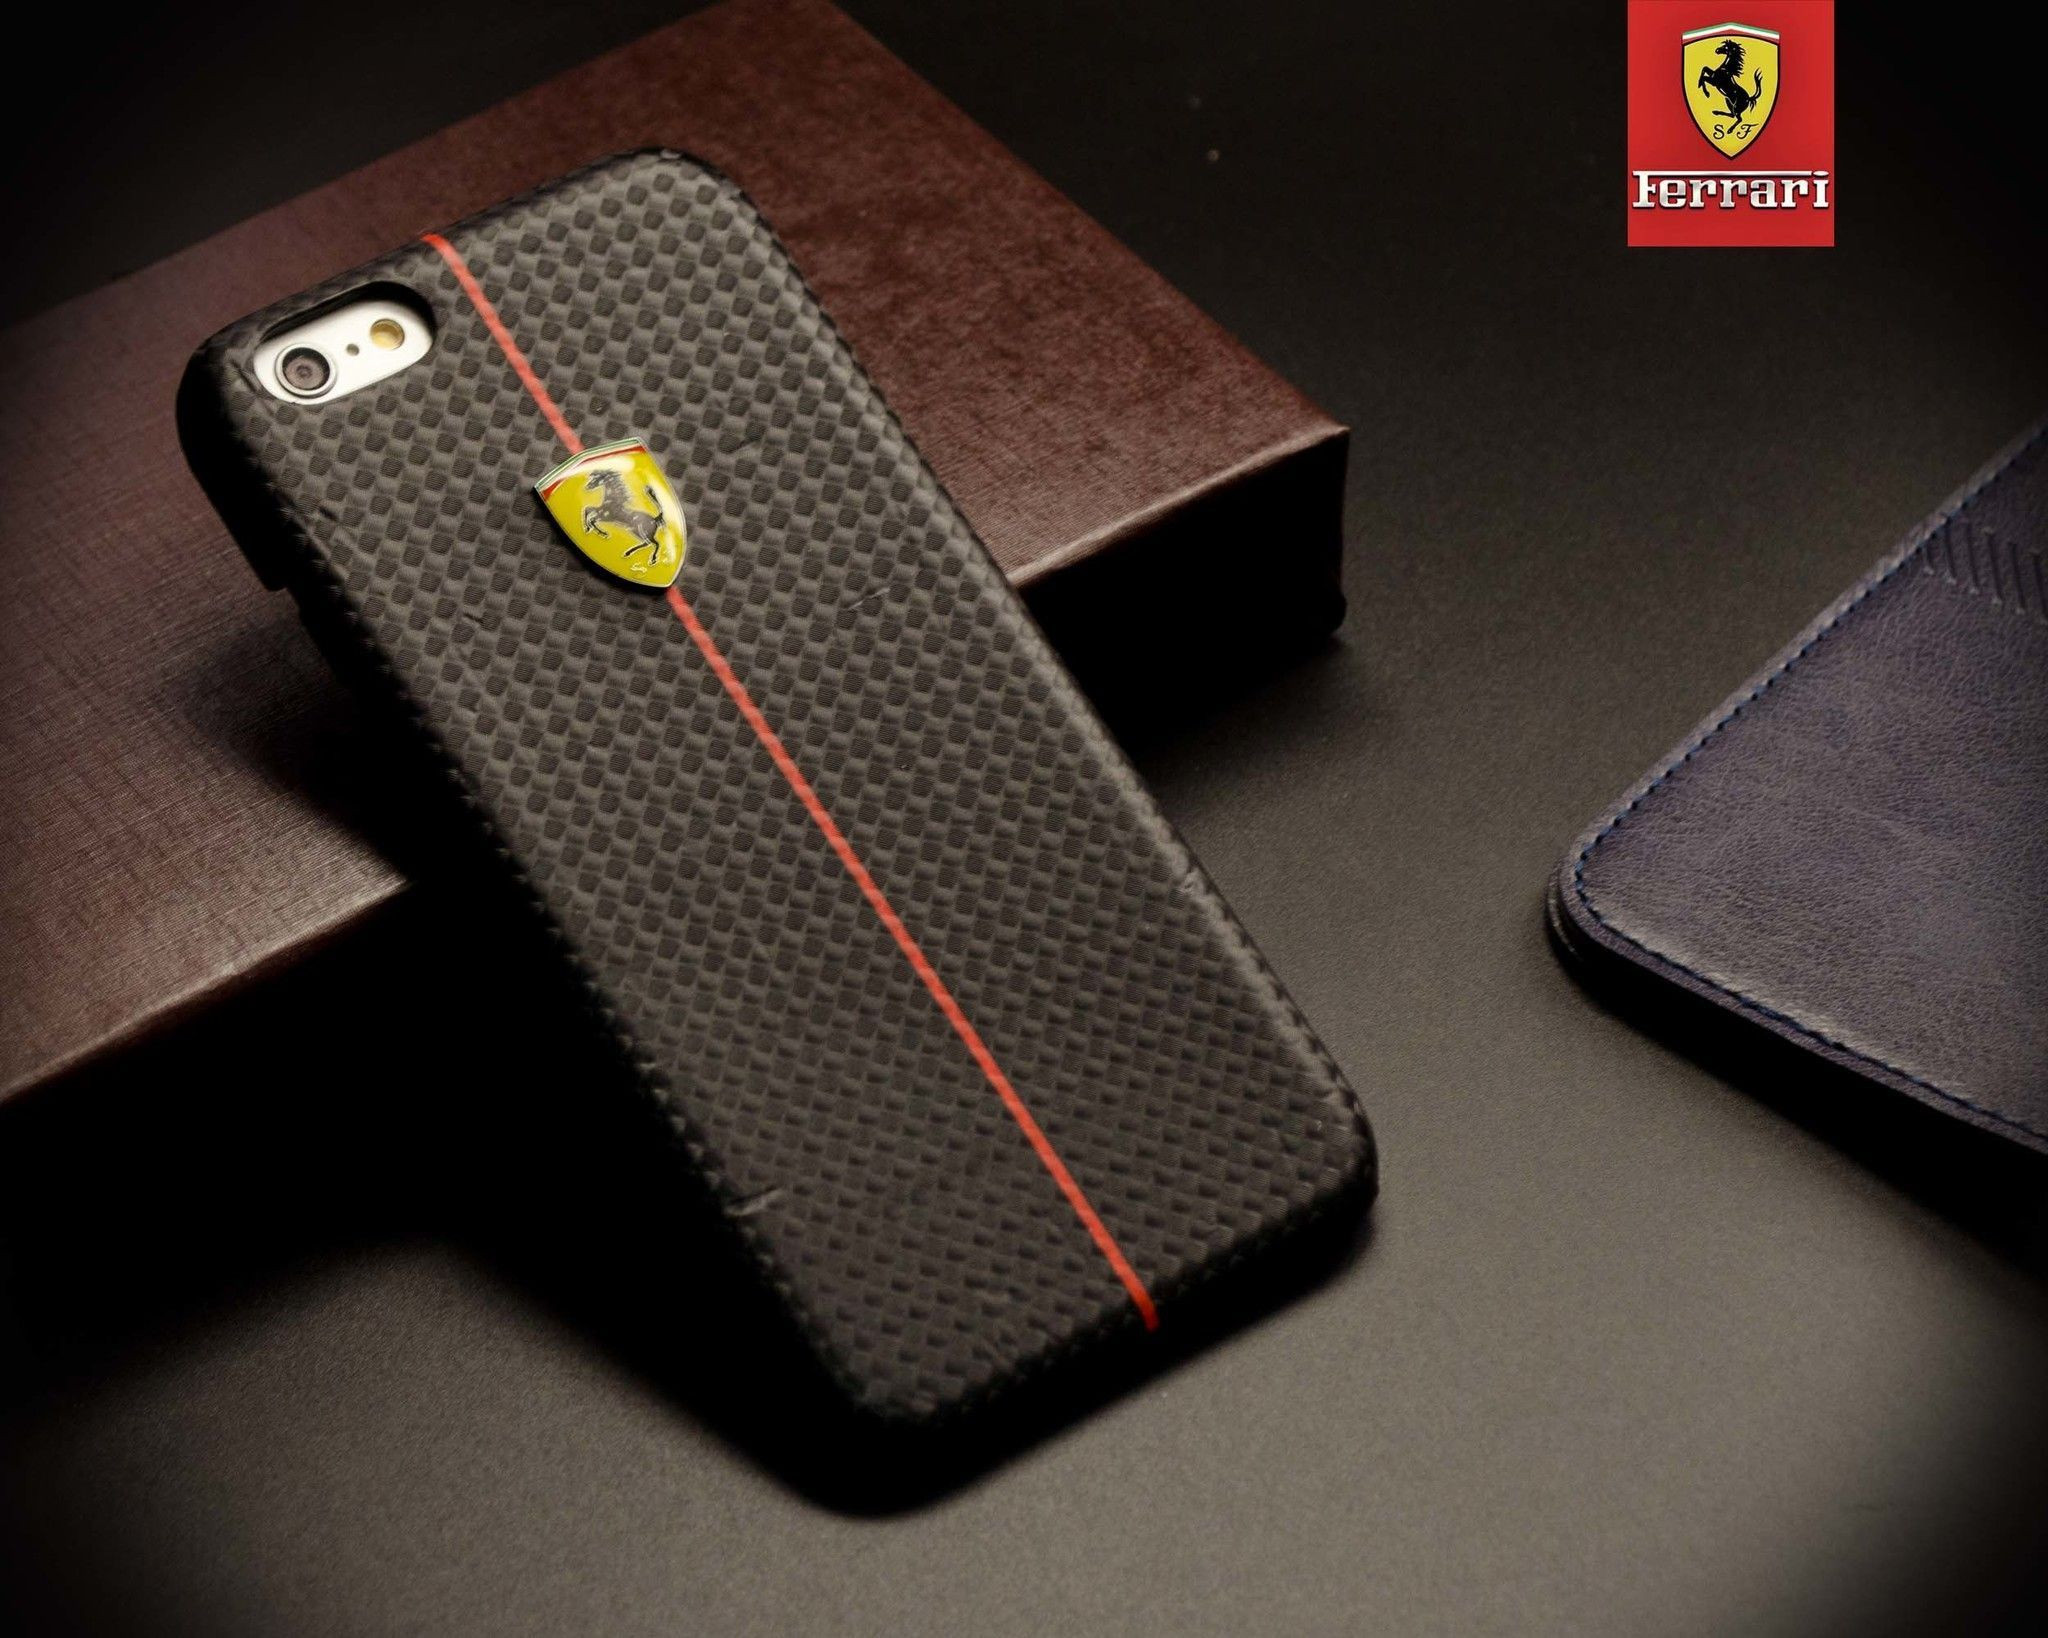 Ferrari ® Apple iPhone 6 / 6S Official Hand Stitched Premium Leather Case Back Cover